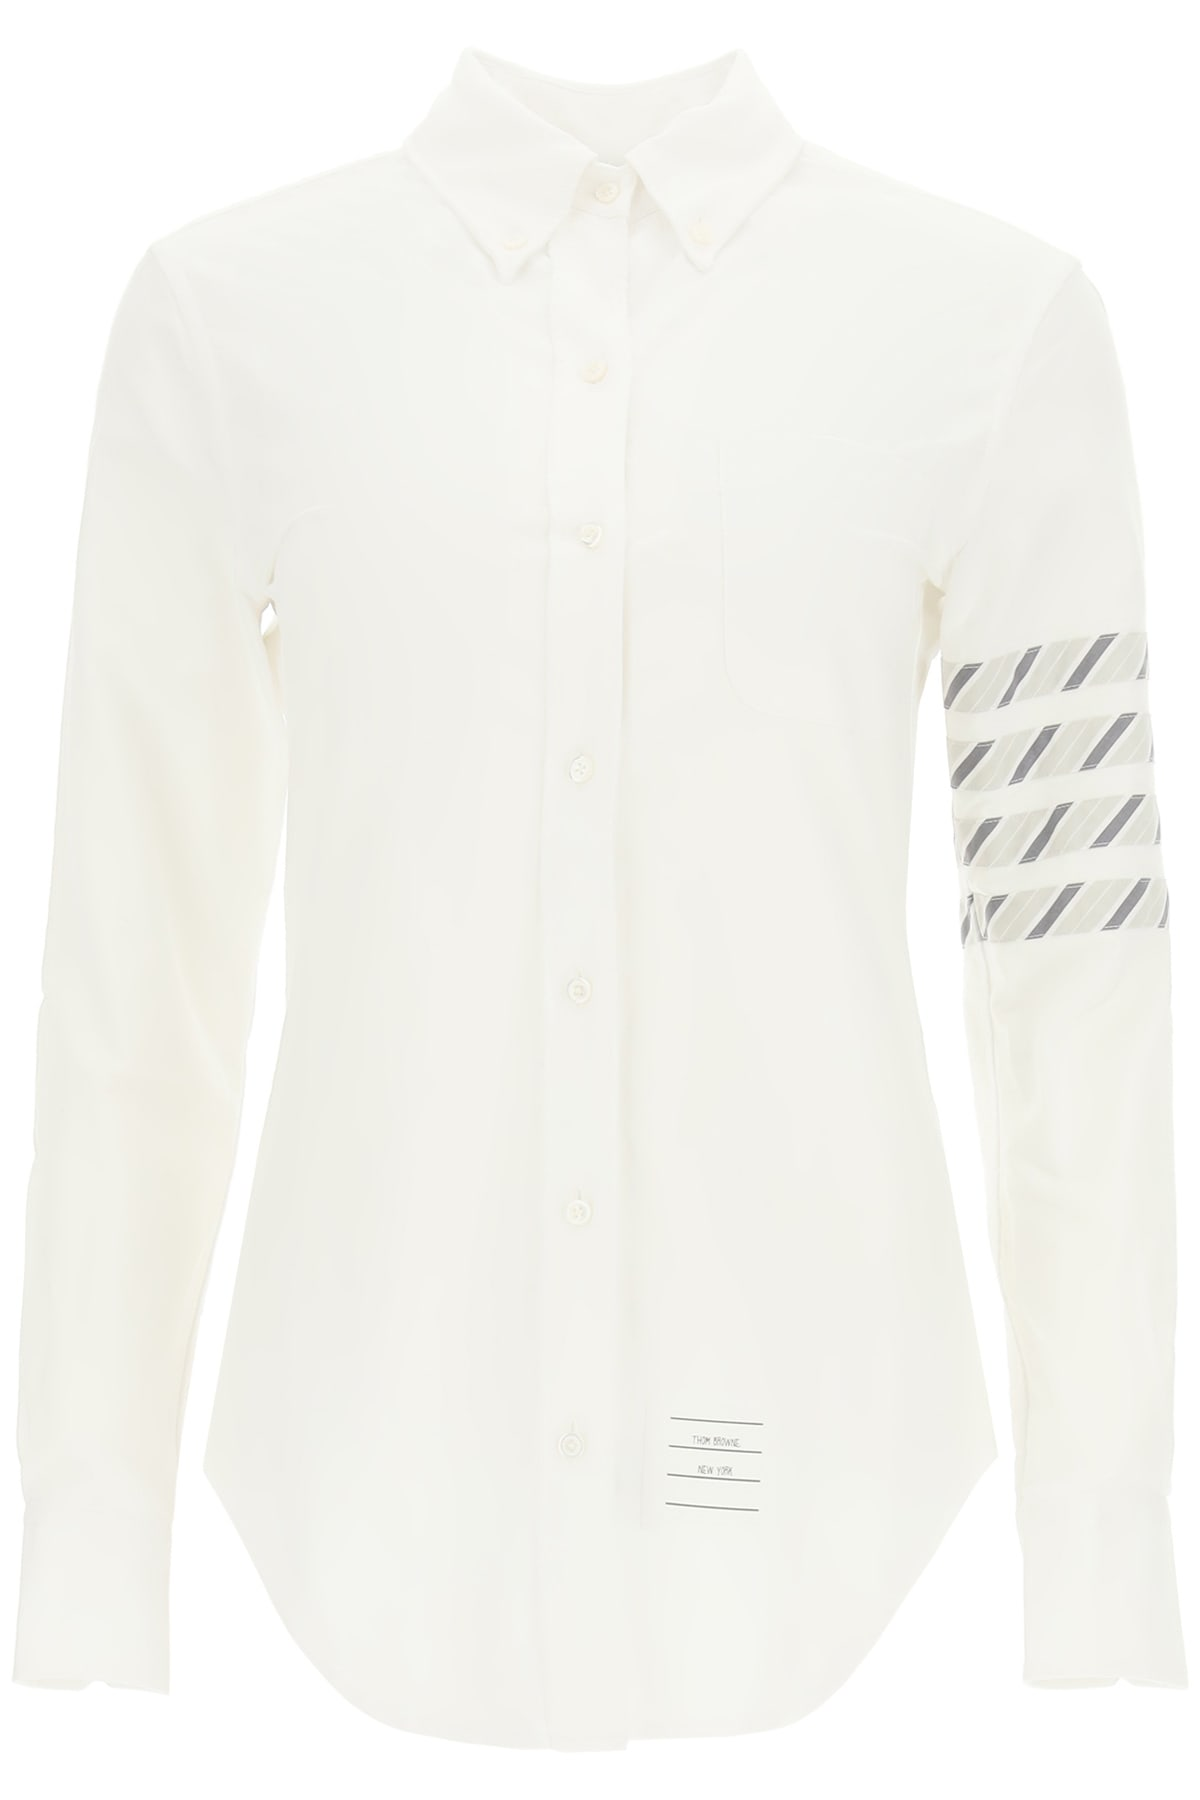 Thom Browne OXFORD COTTON BUTTON-DOWN SHIRT 4-BAR